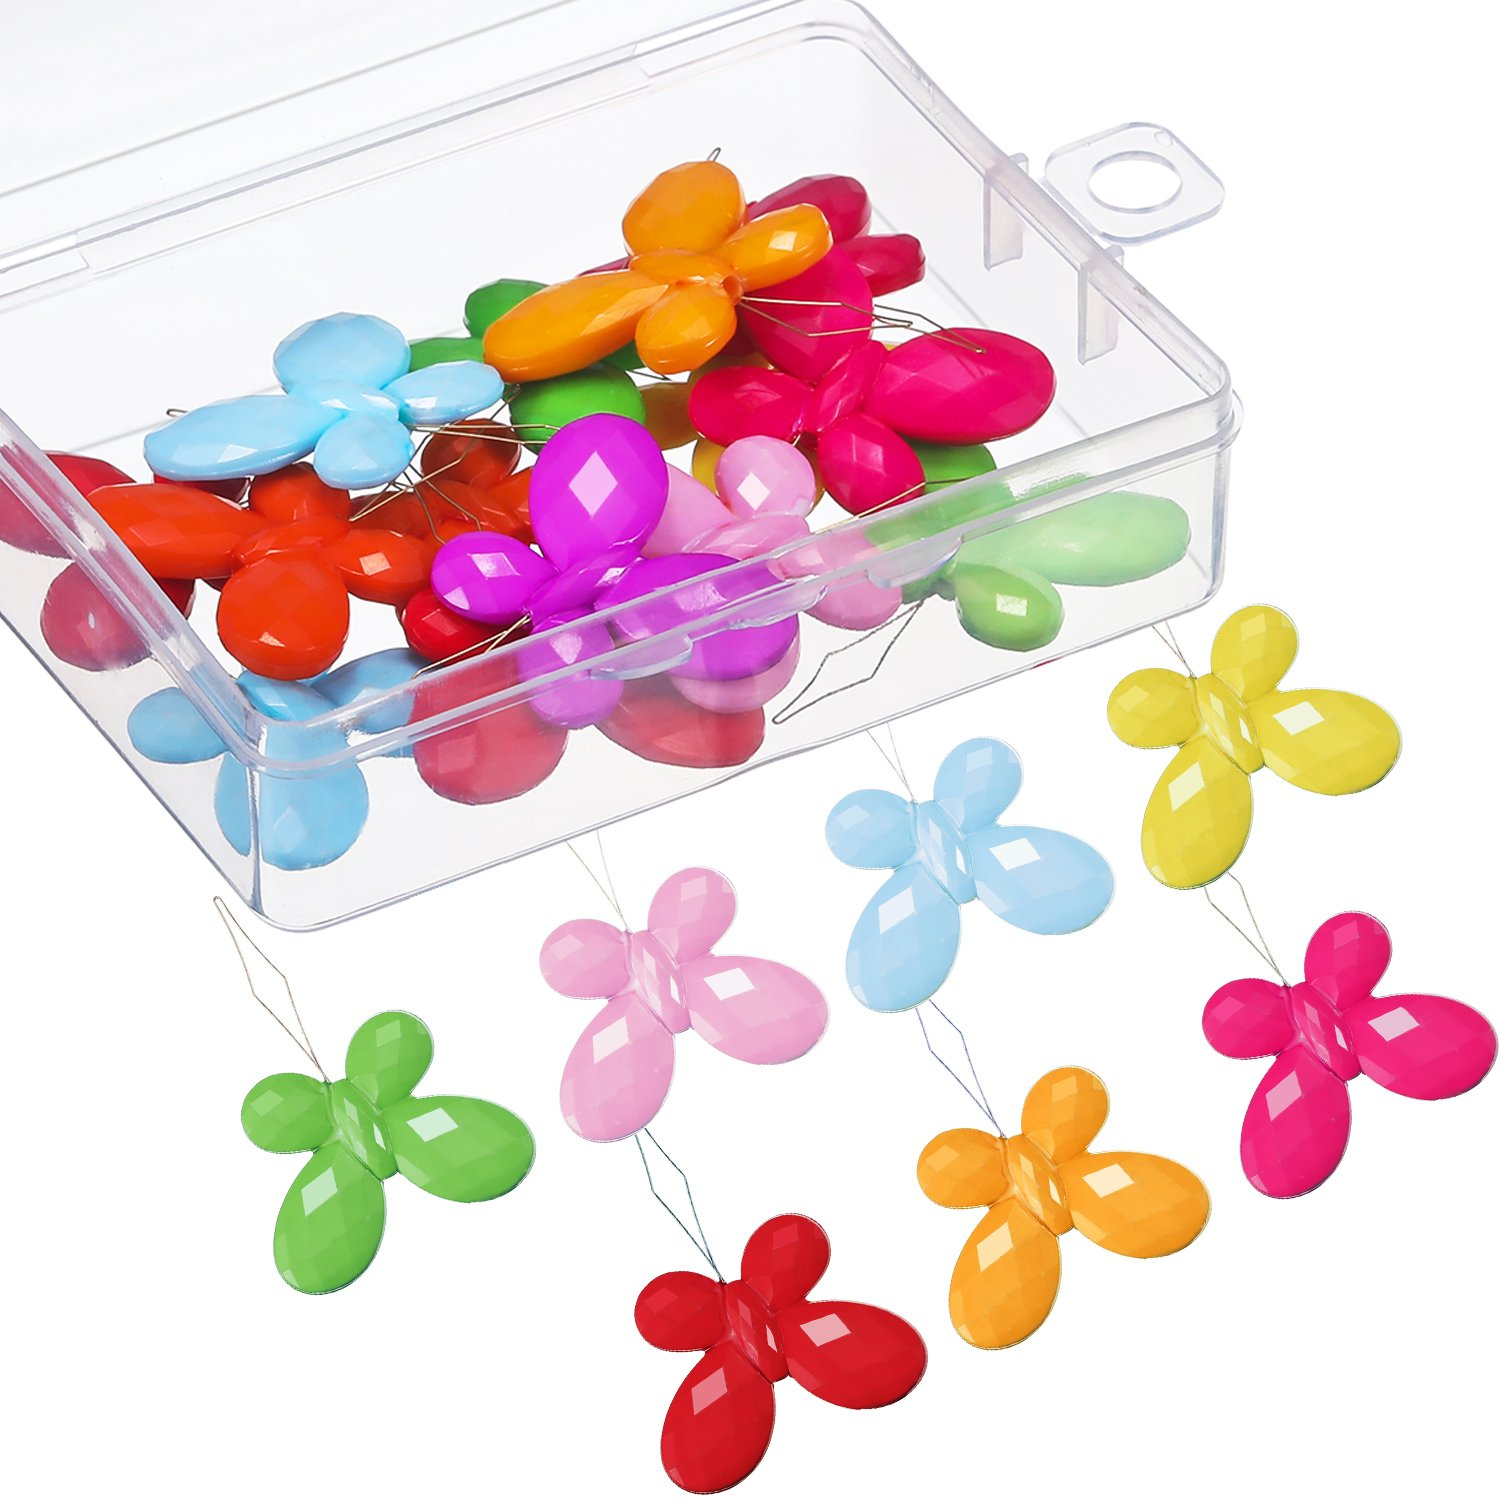 TecUnite 20 Pieces Butterfly Plastic Needle Threaders with Clear Box, Assorted Colors 4337013476